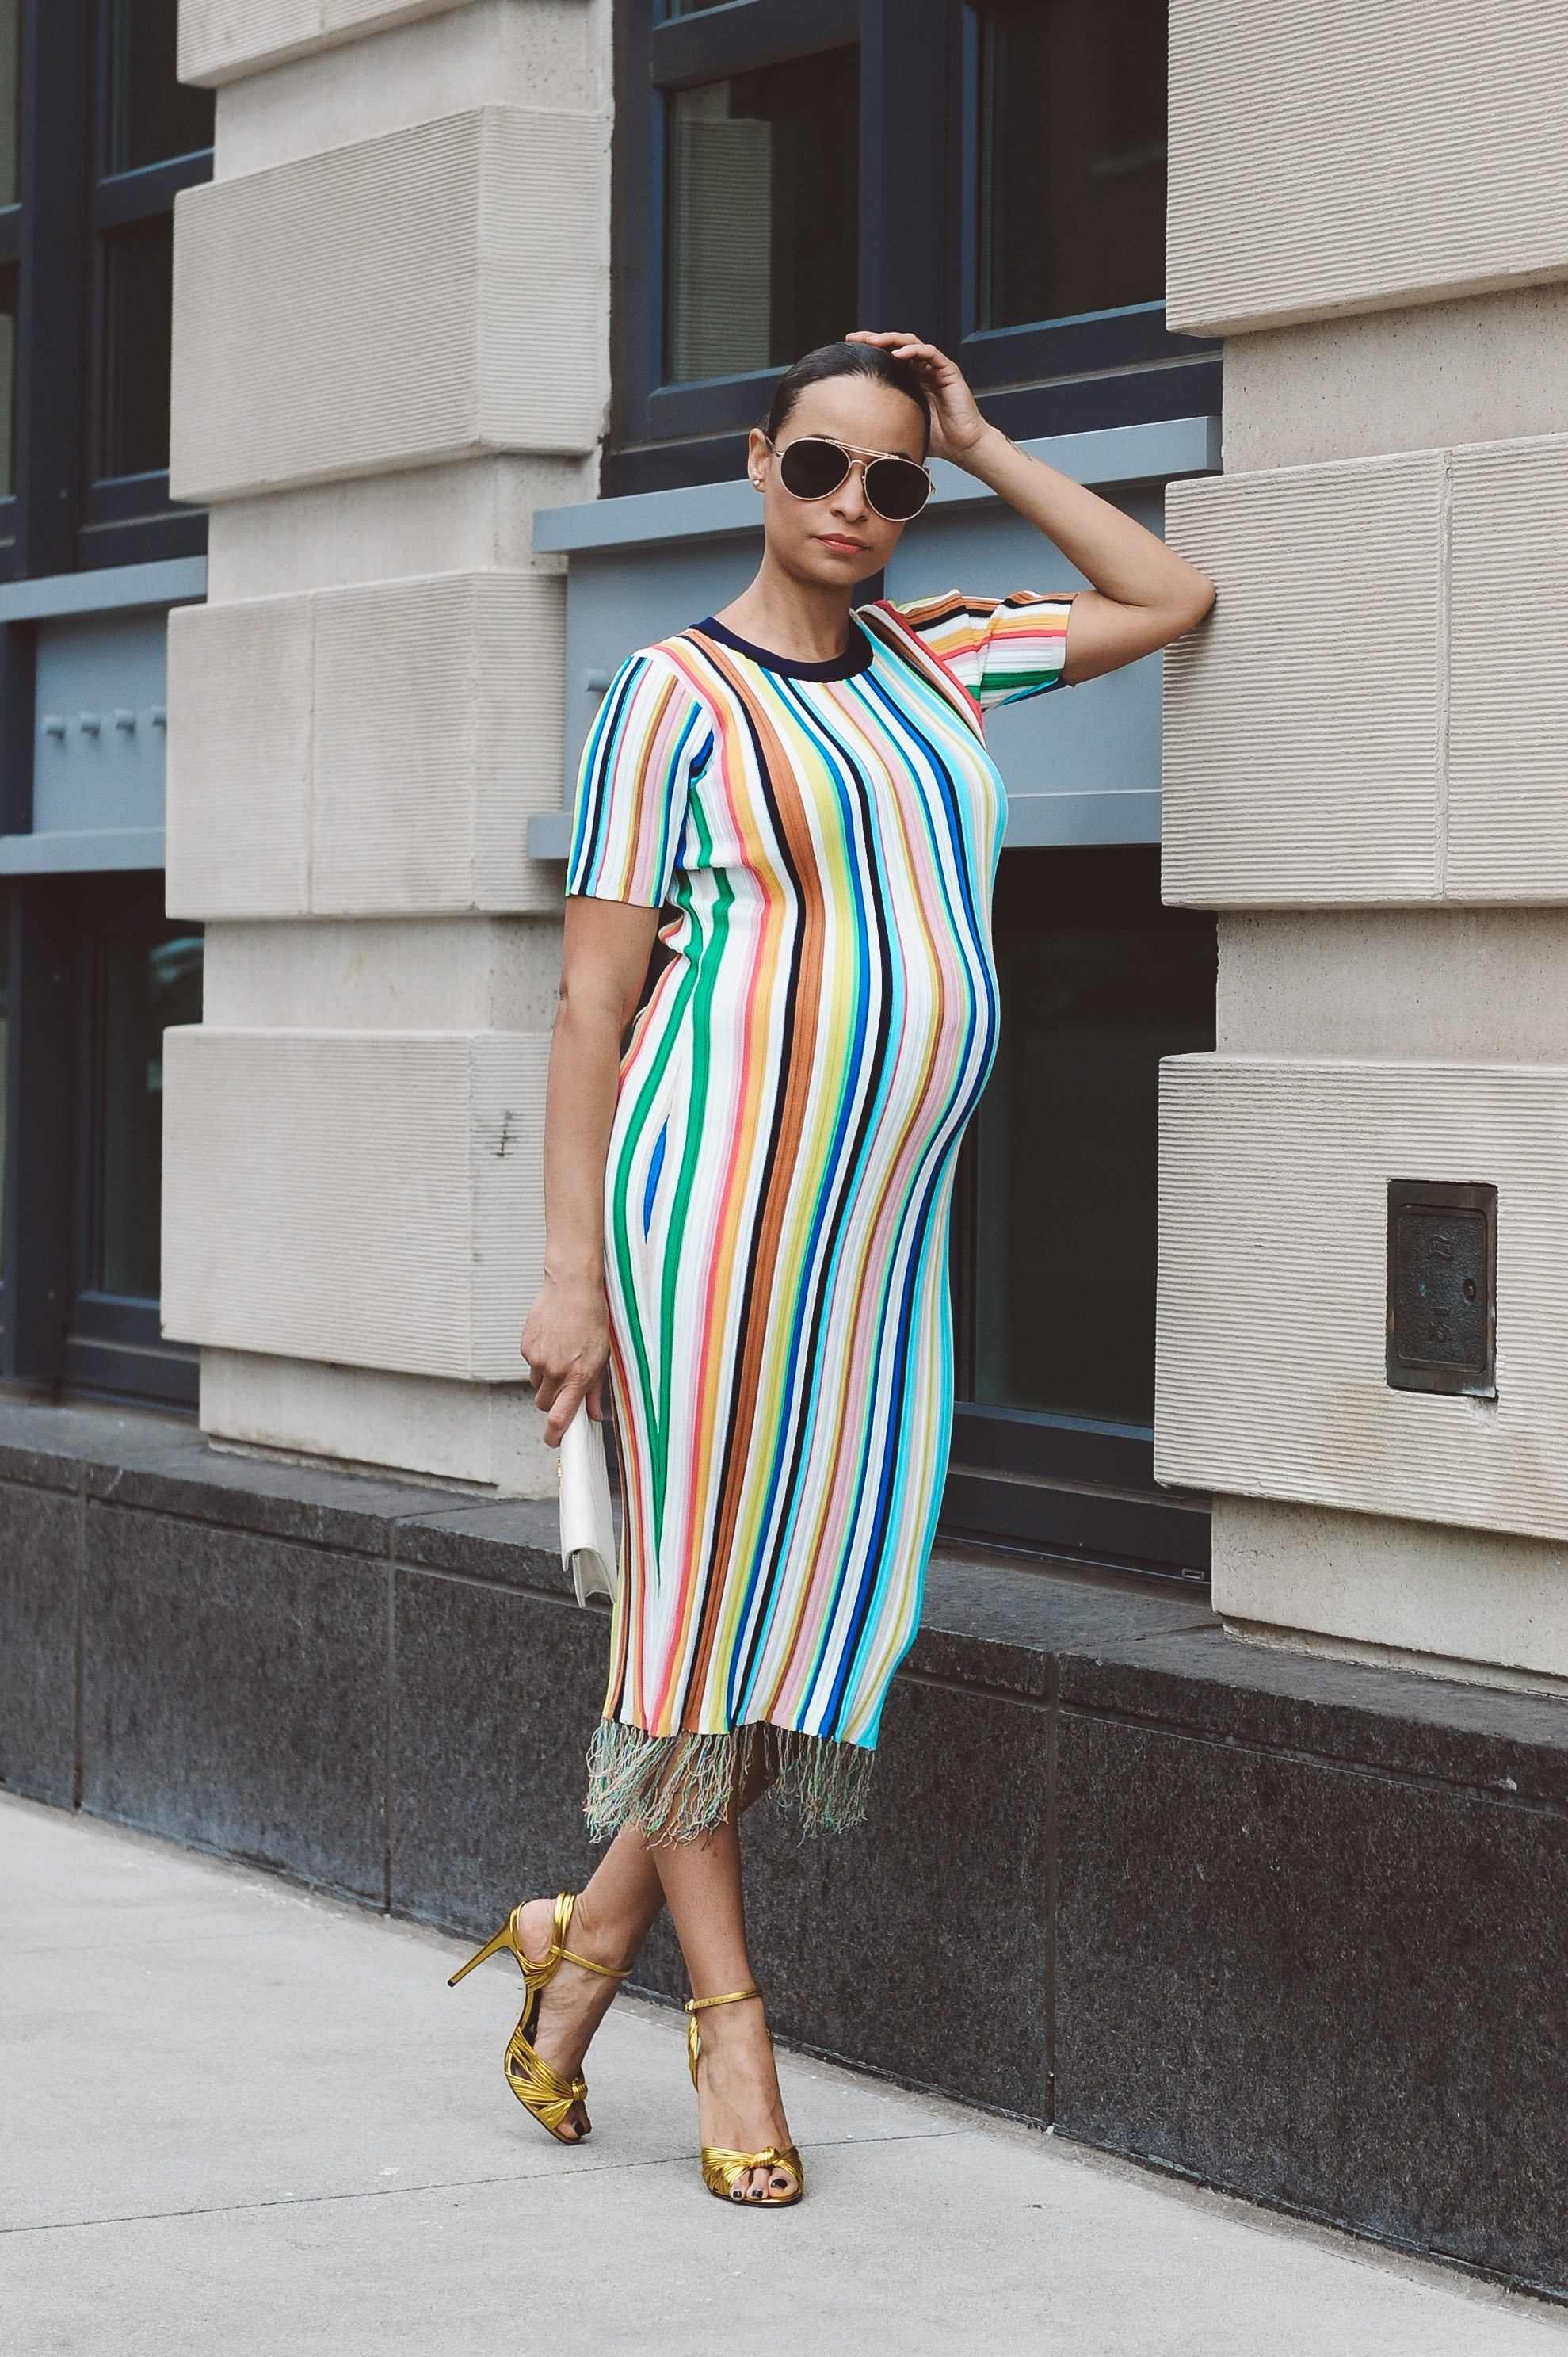 ecaa03bc6a7 Lifestyle Blogger Sai De Silva Shows Pregnancy at 9 months 36 weeks in a  stripe Milly Dress6